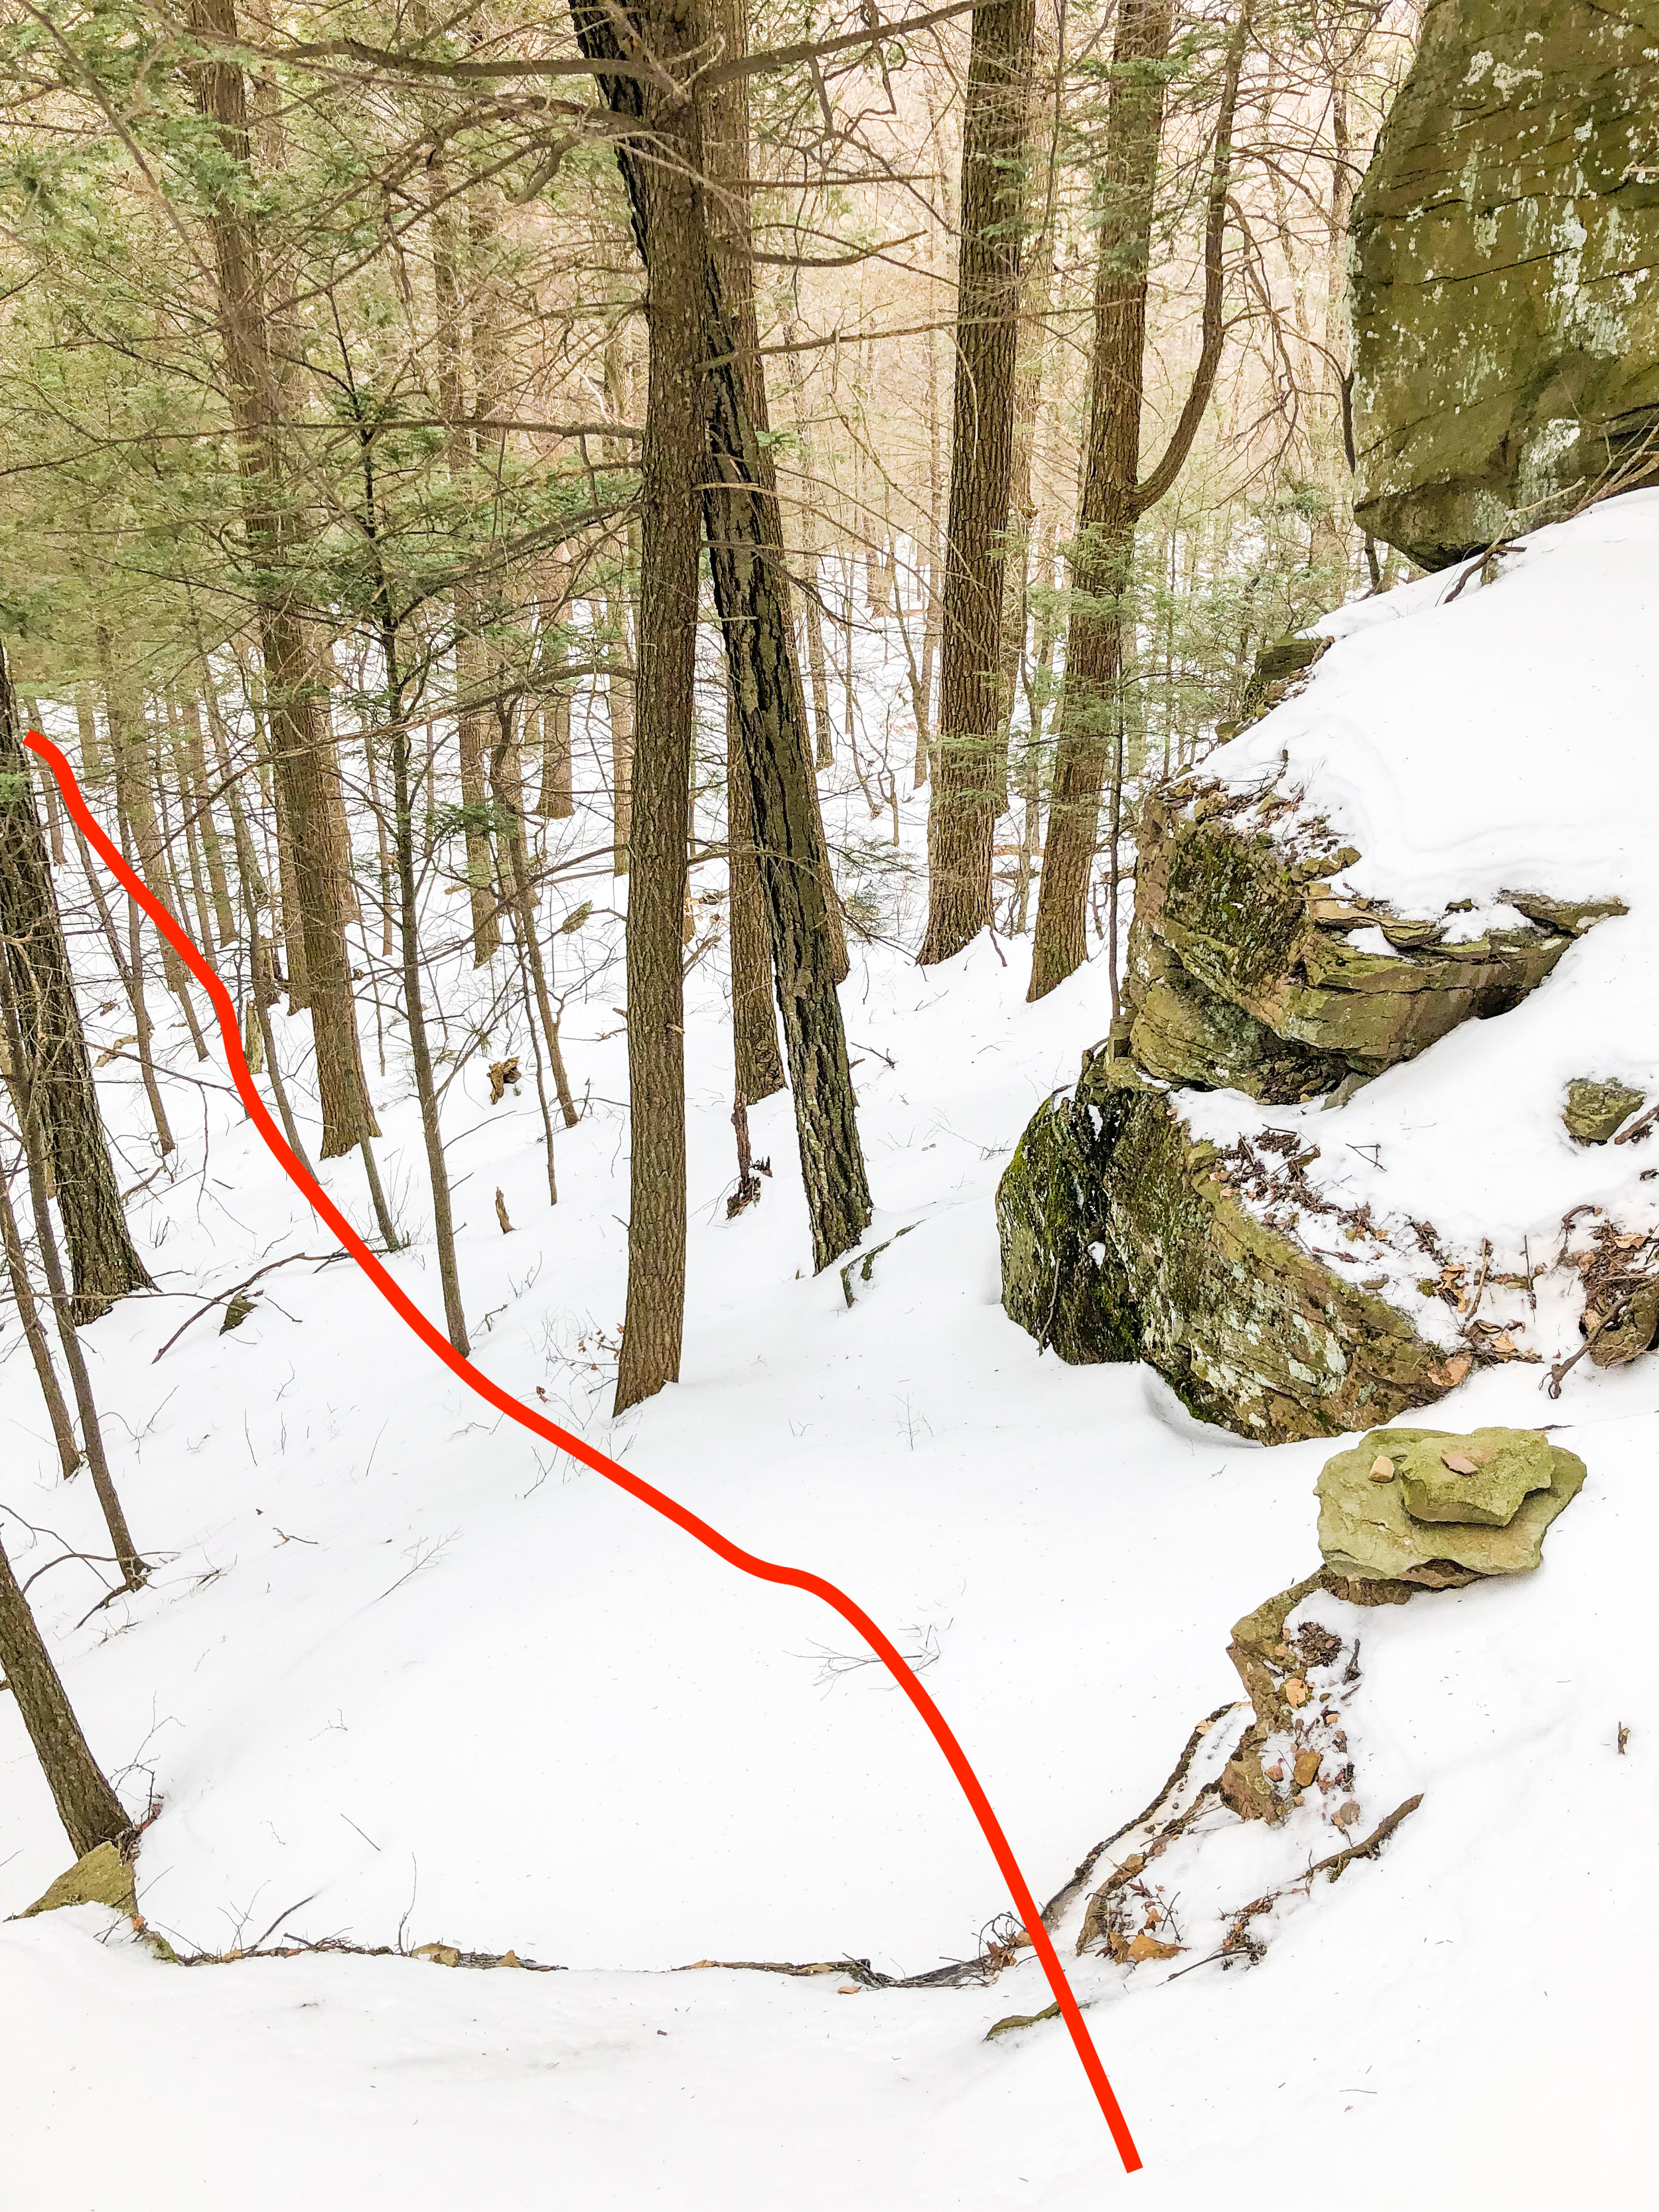 Route Guide Buttermilk Falls in the Catskills Ben Carlson BMF Kronos Furnace Industries DRY ICE Tools Descent 6.jpg